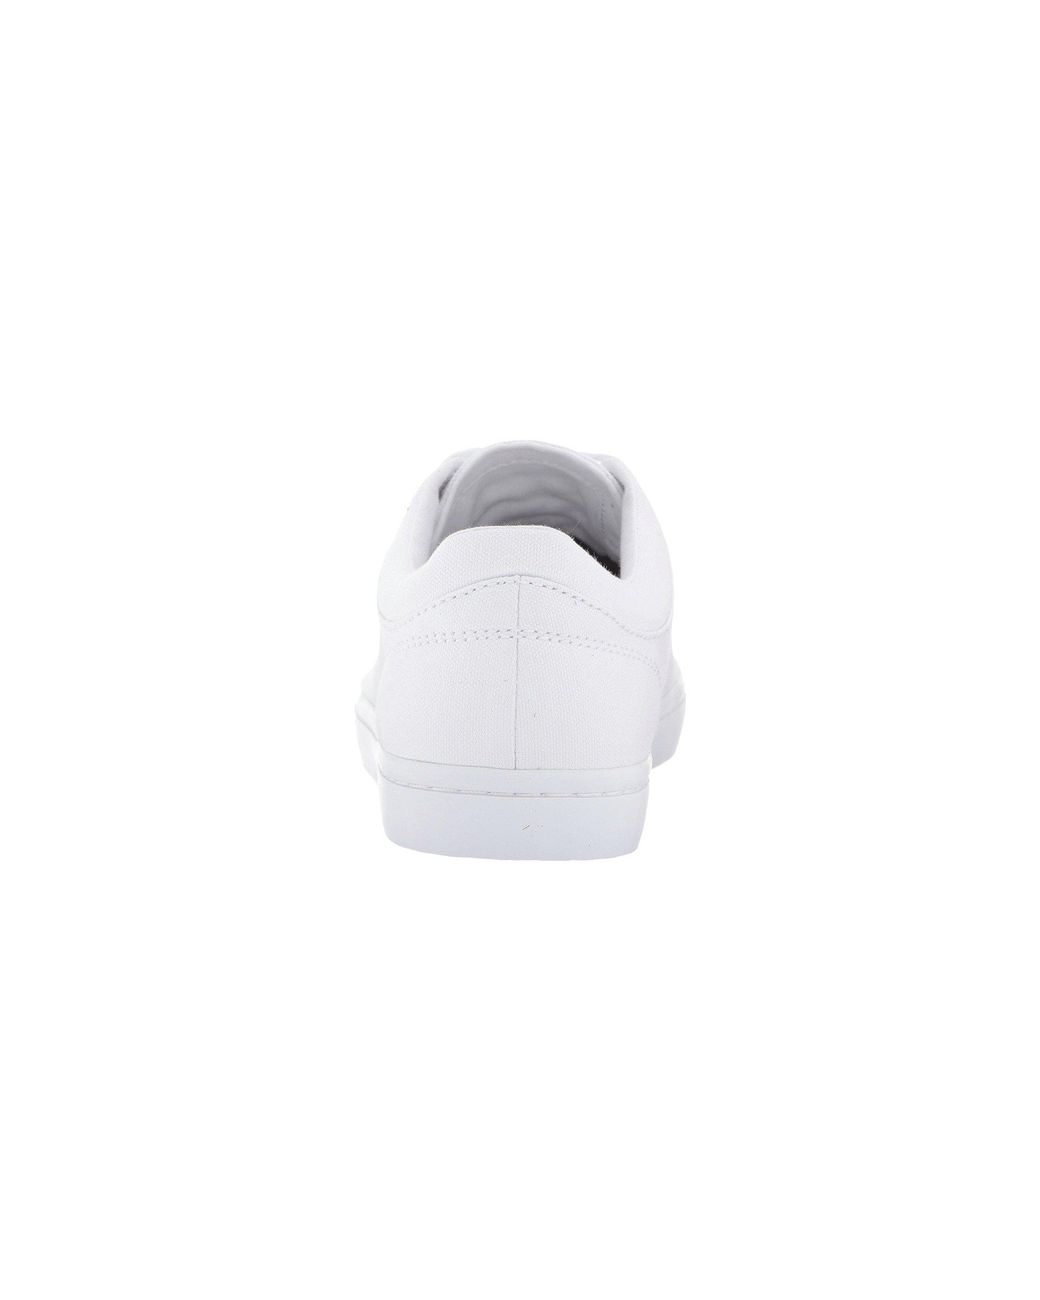 f1d95f8539b8 Lyst - Lacoste Straightset Bl 2 in White - Save 28%